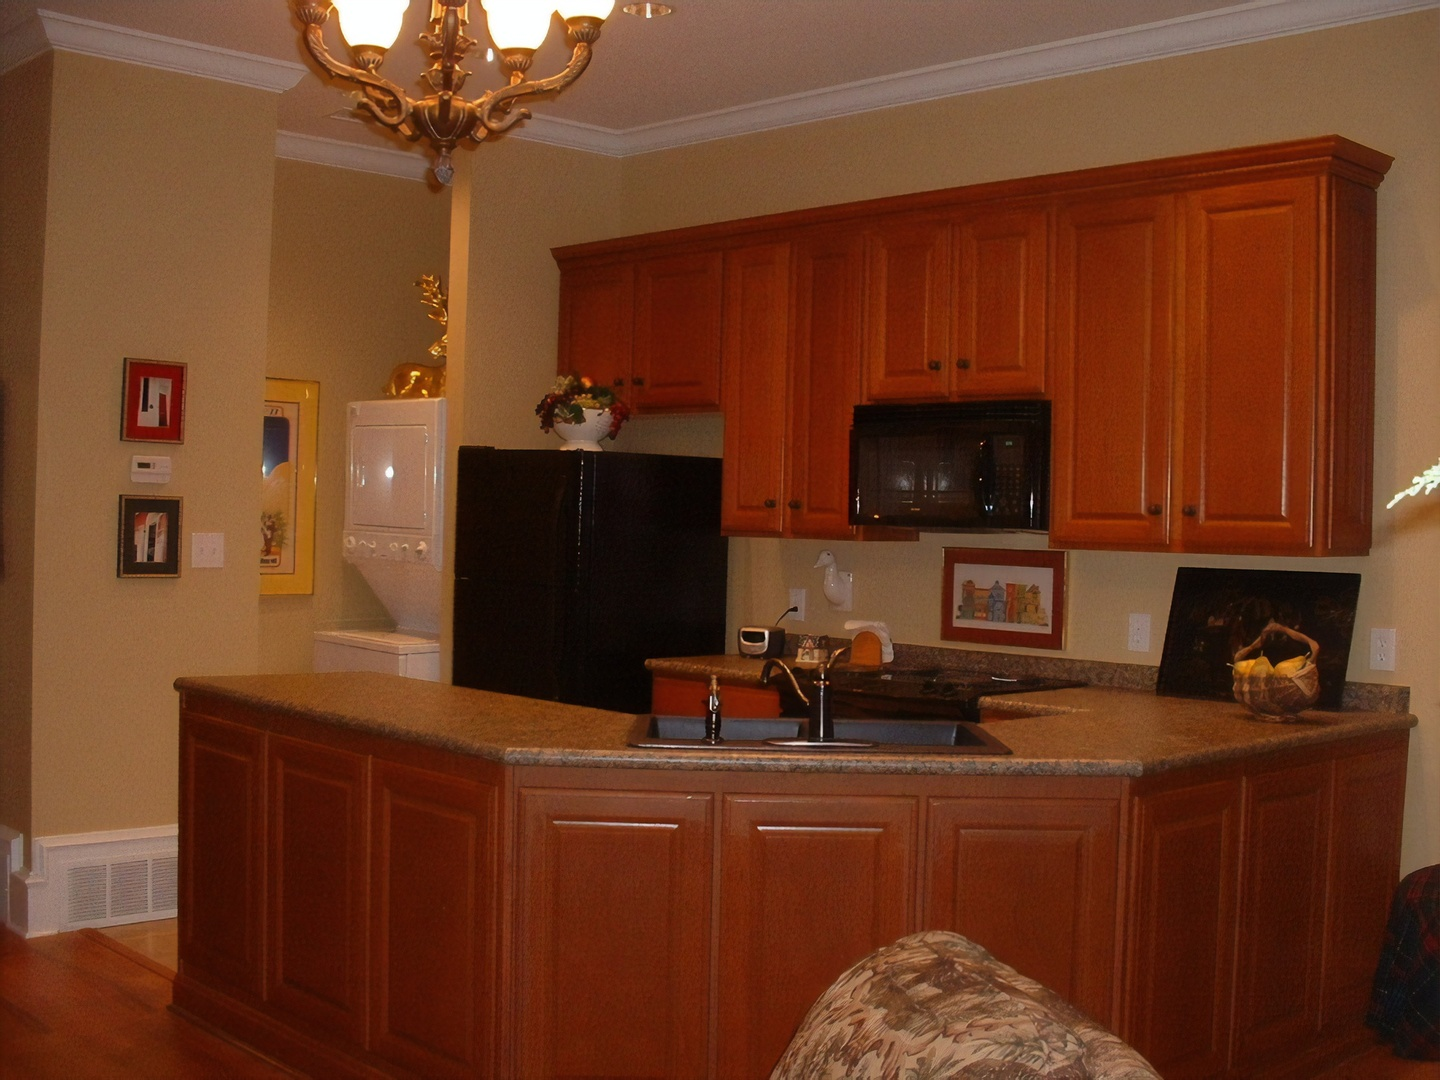 A kitchen with wooden cabinets at Court Square Inn Bed & Breakfast.